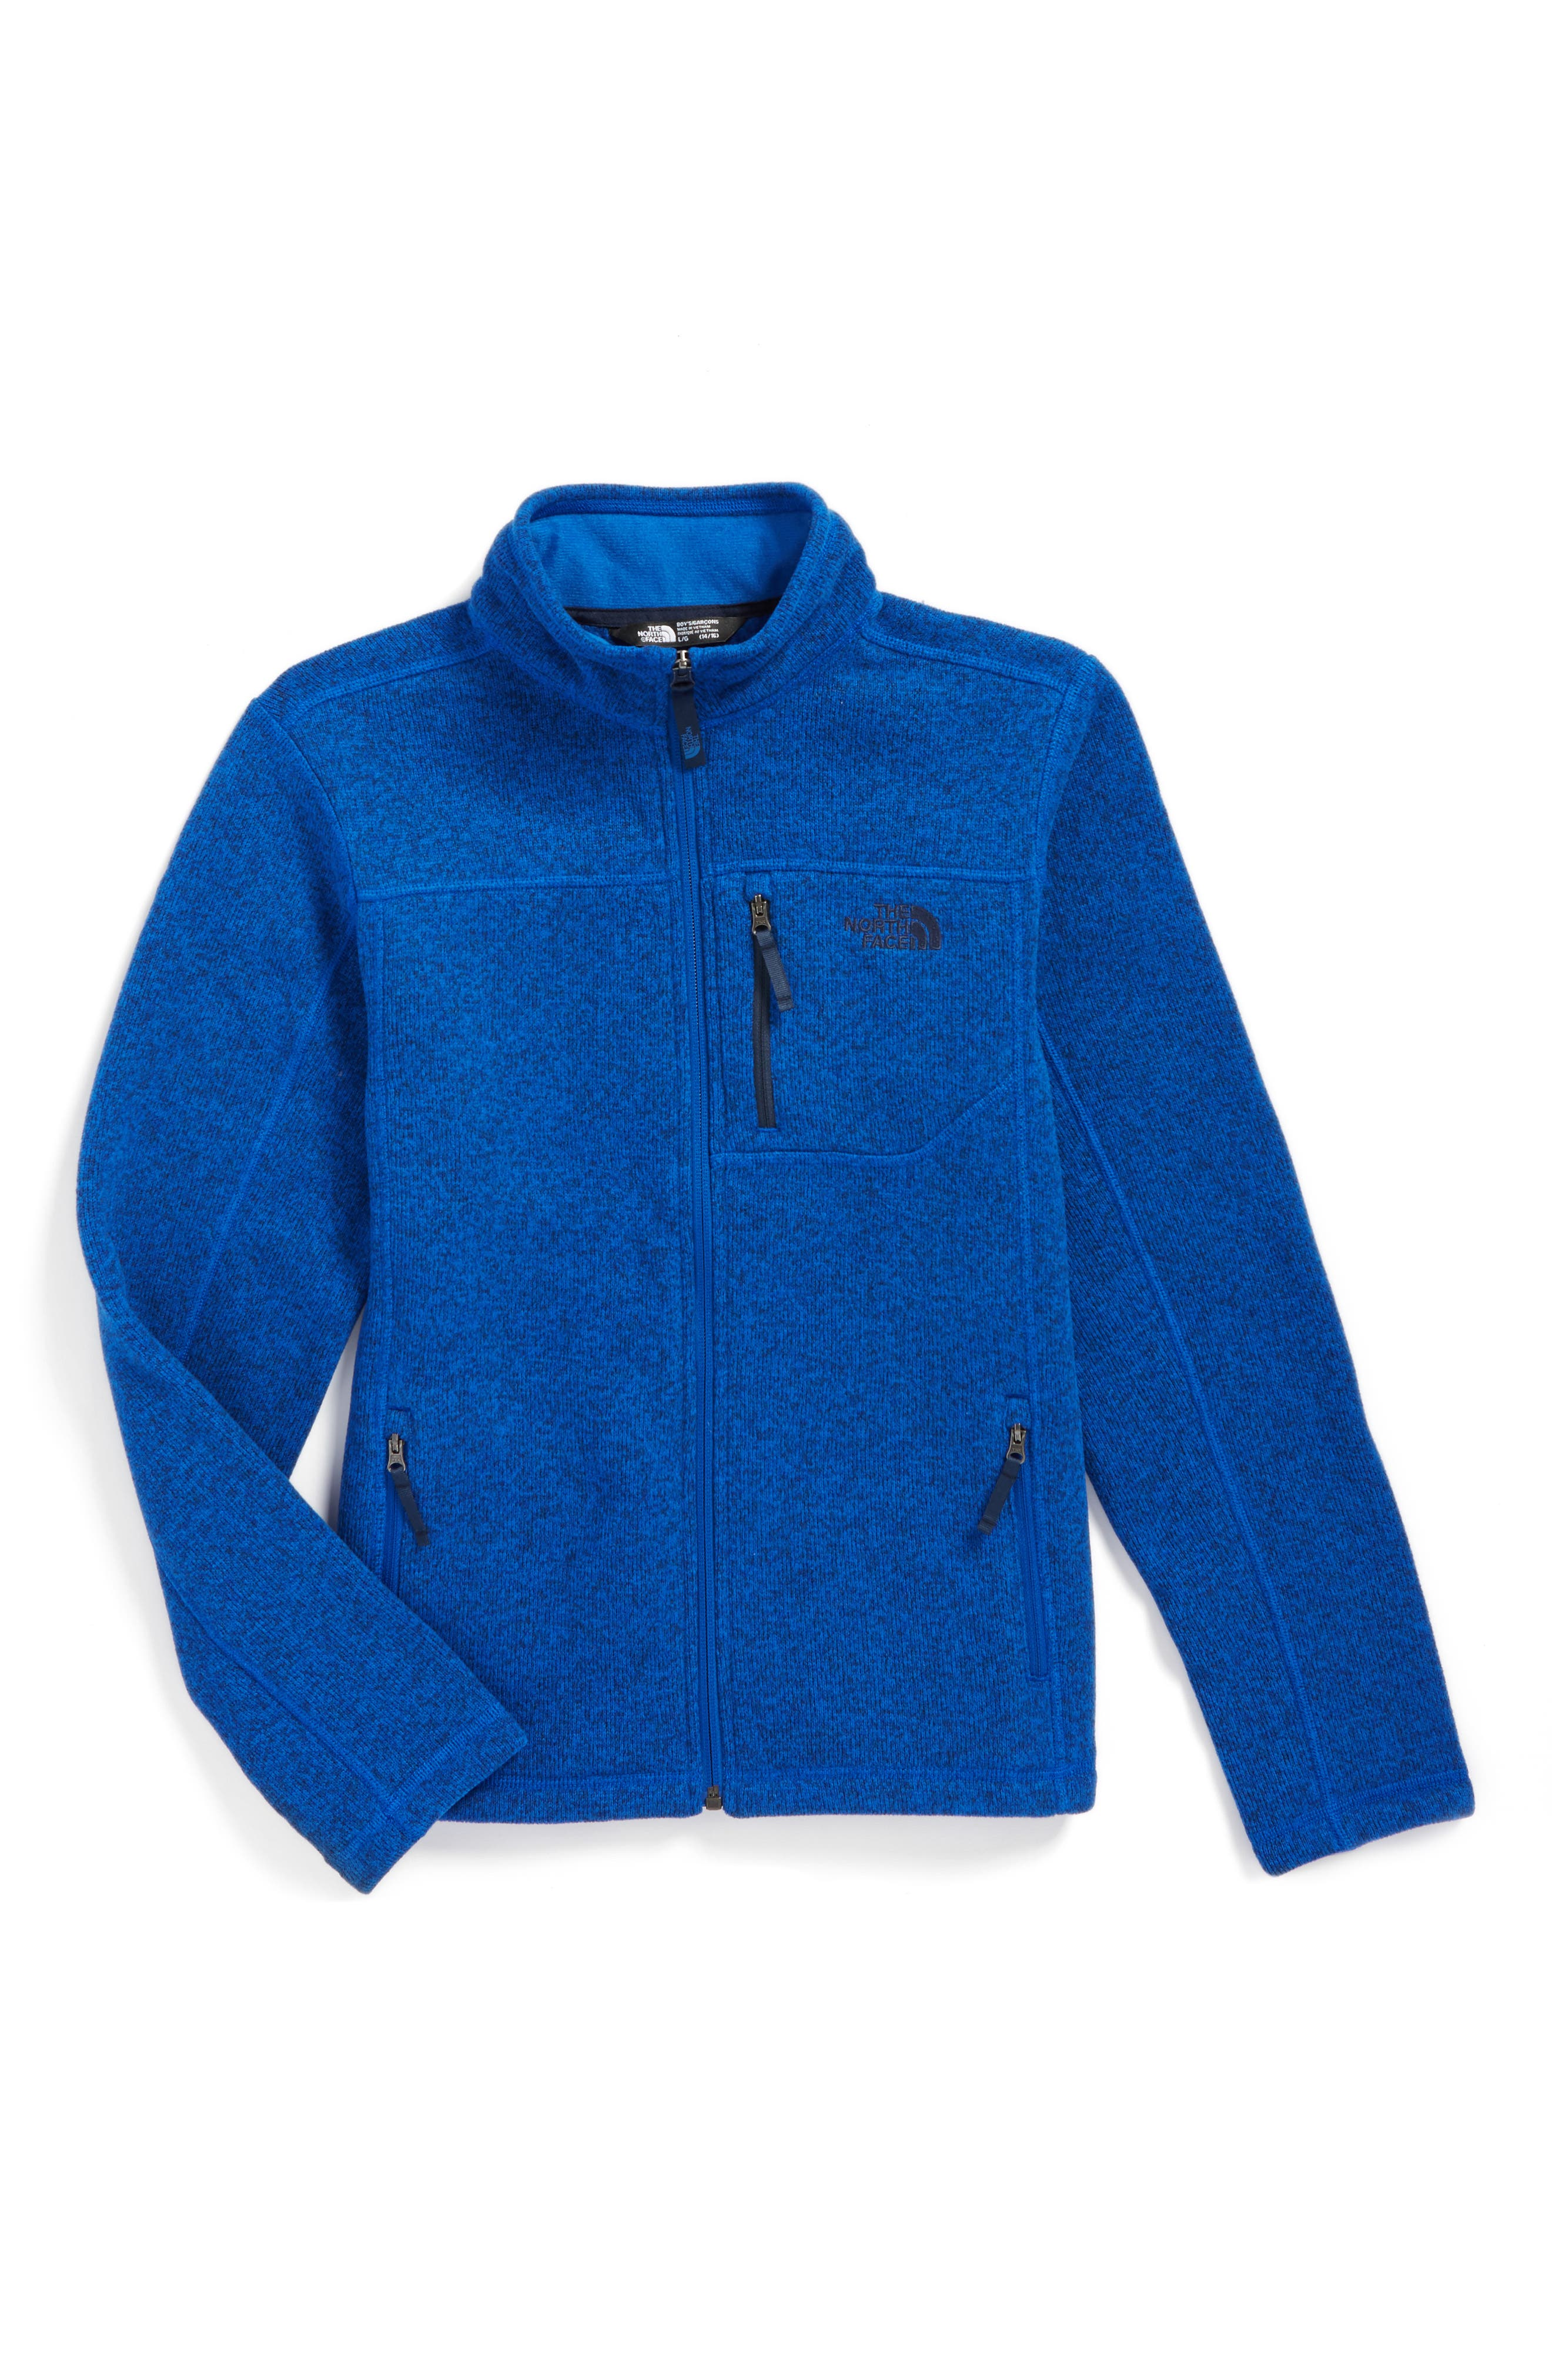 Alternate Image 1 Selected - The North Face Gordon Lyons Sweater Fleece Zip Jacket (Big Boys)